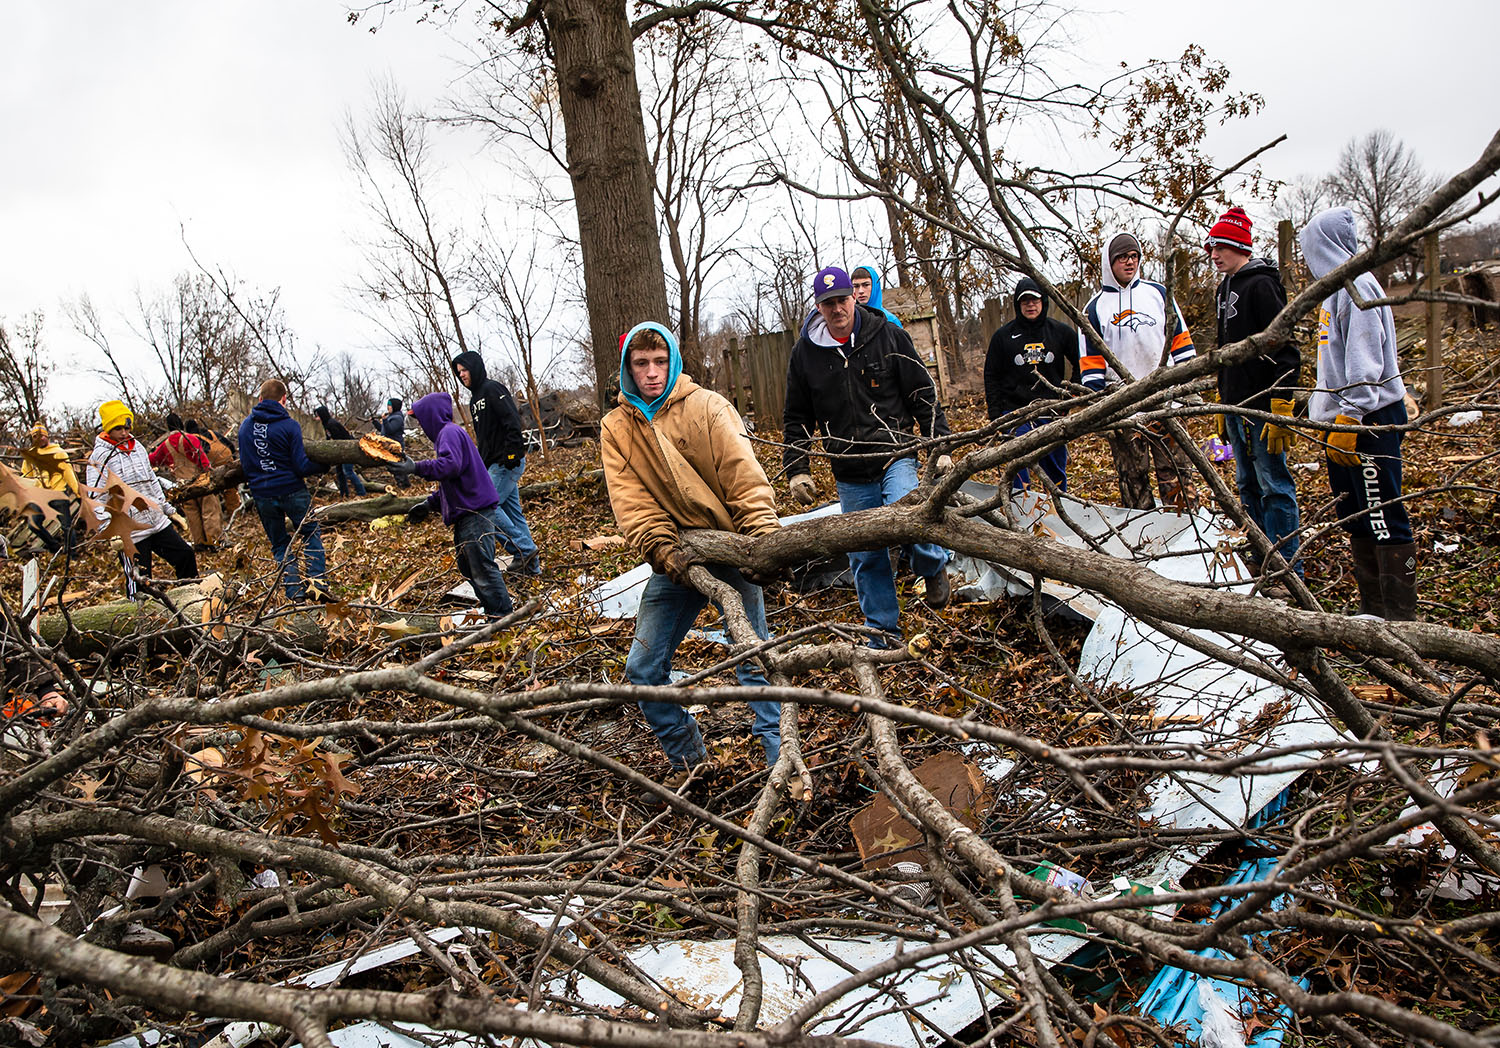 "Taylorville sophomore Wyatt Shirley, center, and Taylorville boys basketball head coach Ryan Brown remove fallen branches from behind a tornado damaged home as they join in with student athletes from Taylorville High School as they volunteer as a group to help with the cleanup from Saturday's tornado along West Prairie Street, Monday, Dec. 3, 2018, in Taylorvile, Ill. ""They don't have to come out here, but it's just a bunch of go getters that just wanna work and help,"" said Brown of the athletes volunteering their time. ""It's not much different than being on the field or the wrestling mat or the basketball court, it's just people that wanna help."" The athletes and their coaches went from house to house or wherever they were needed to help move debris to the curb. ""We've been through so many houses, I don't even know what road I'm on right now,"" said Brown. ""I don't know who lives at this house or the last house or the house before that and that's how these kids are, here's a pile lets go move it."" [Justin L. Fowler/The State Journal-Register]"